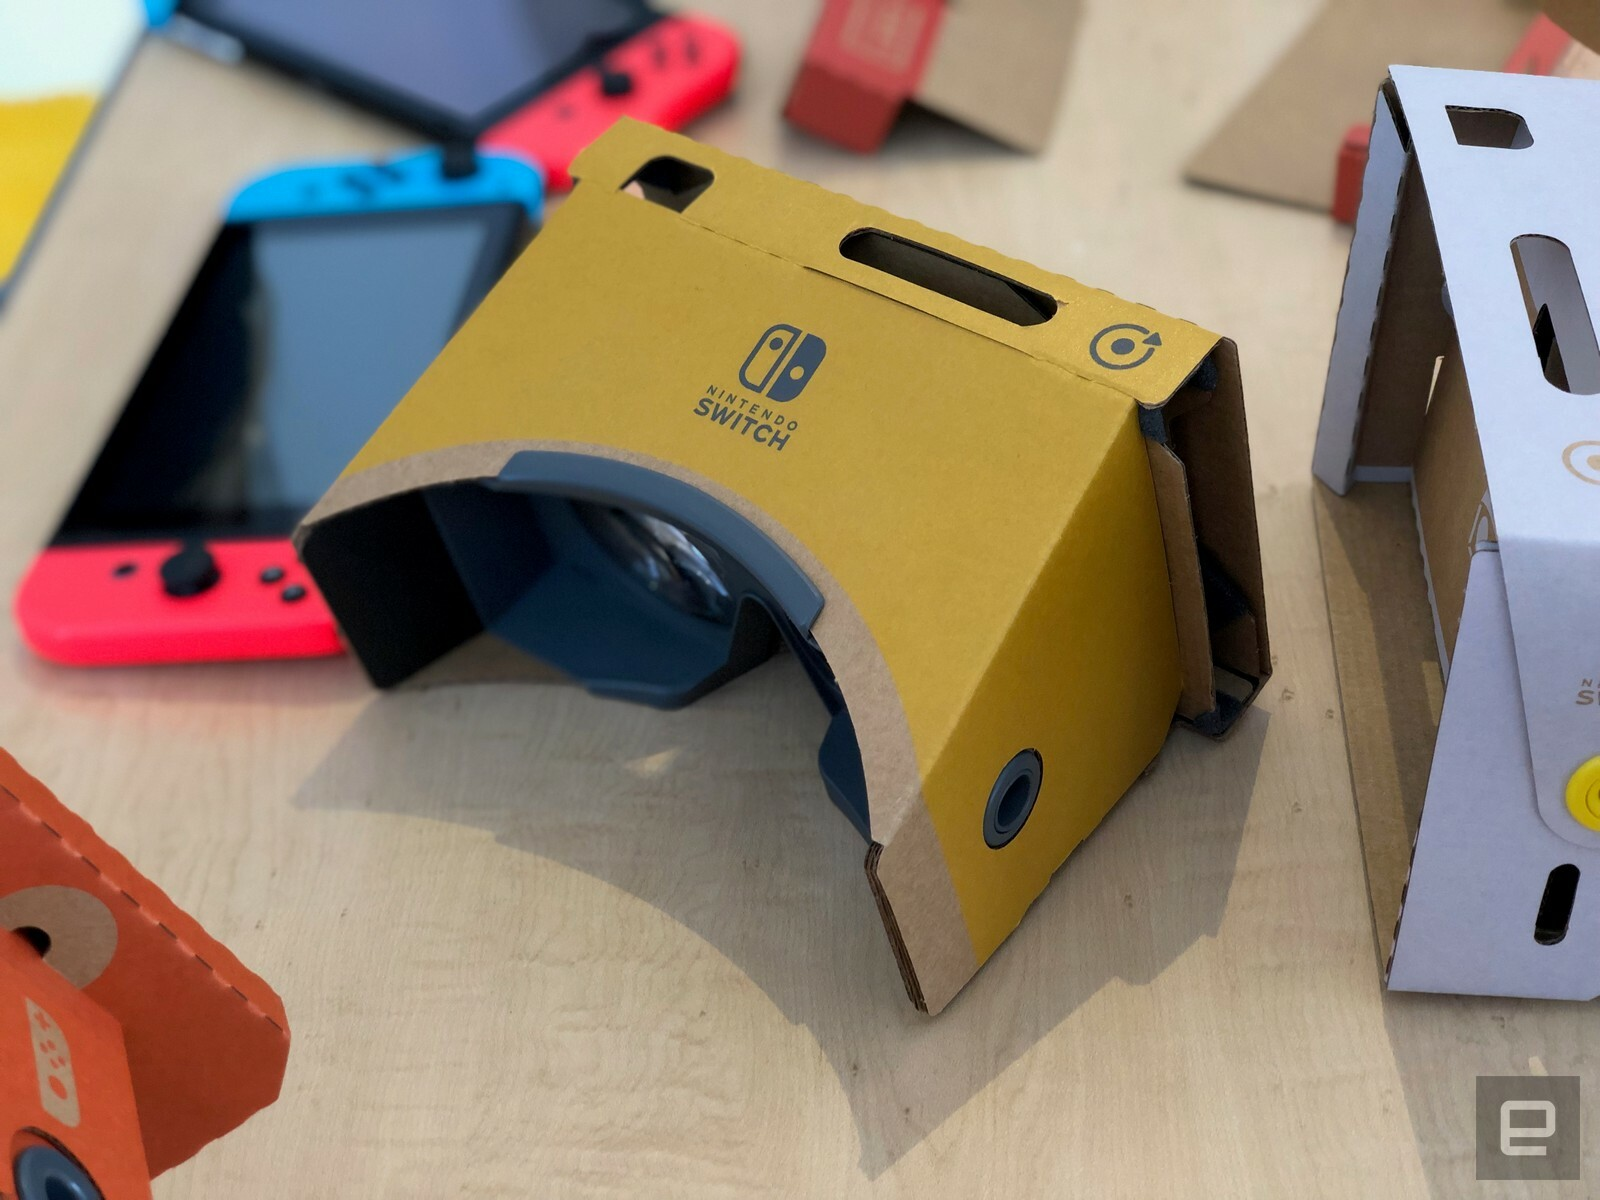 Get a walkthrough of all Nintendo Labo: VR Kit's games and features